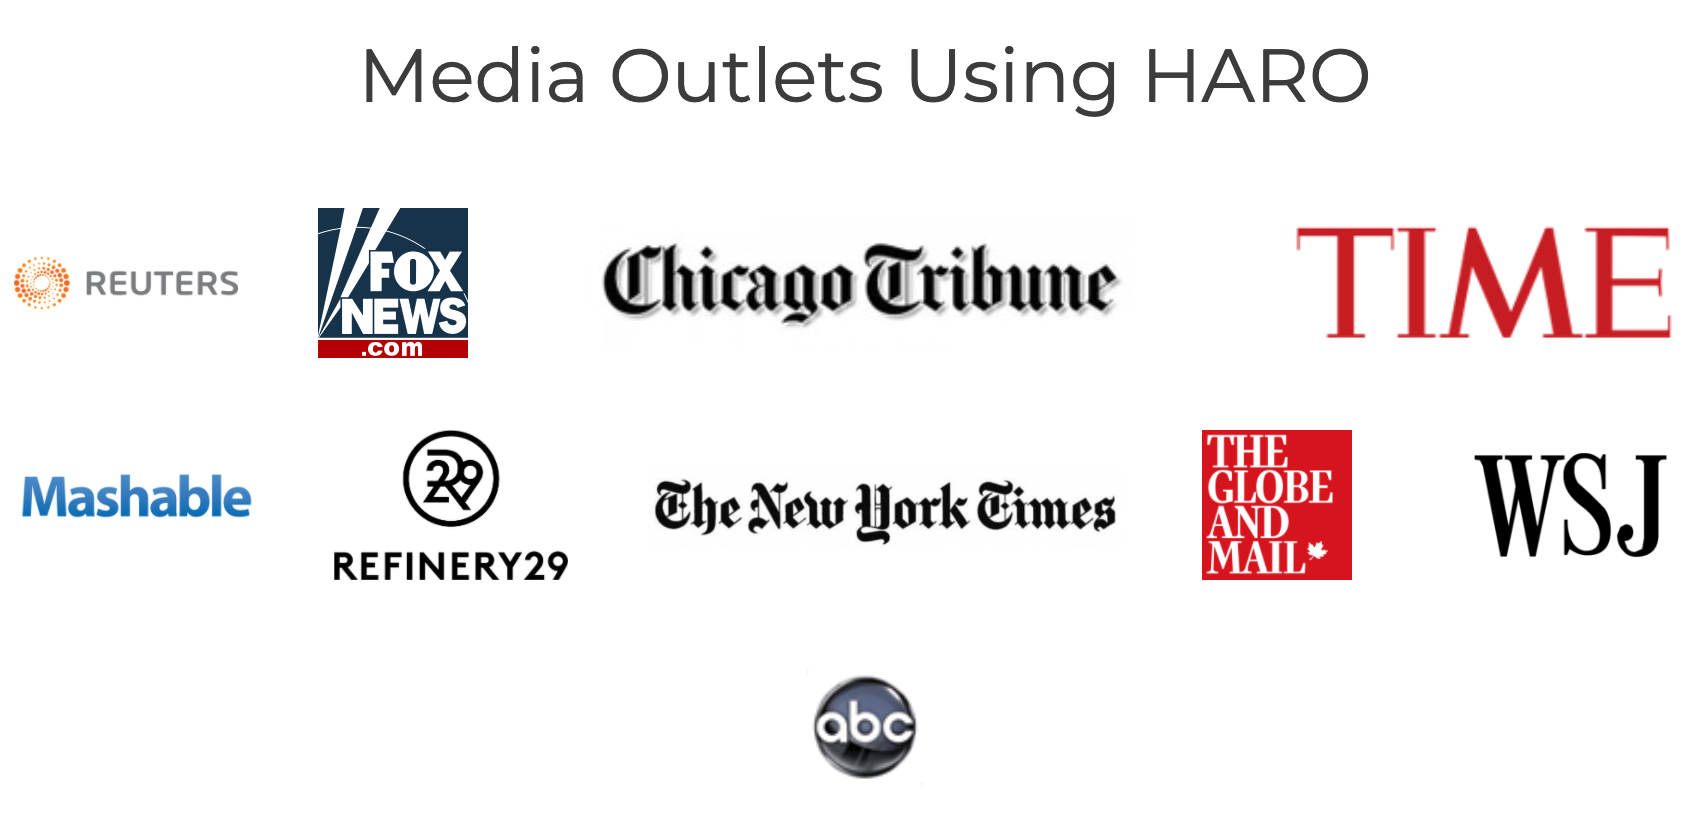 Media Outlets Using HARO